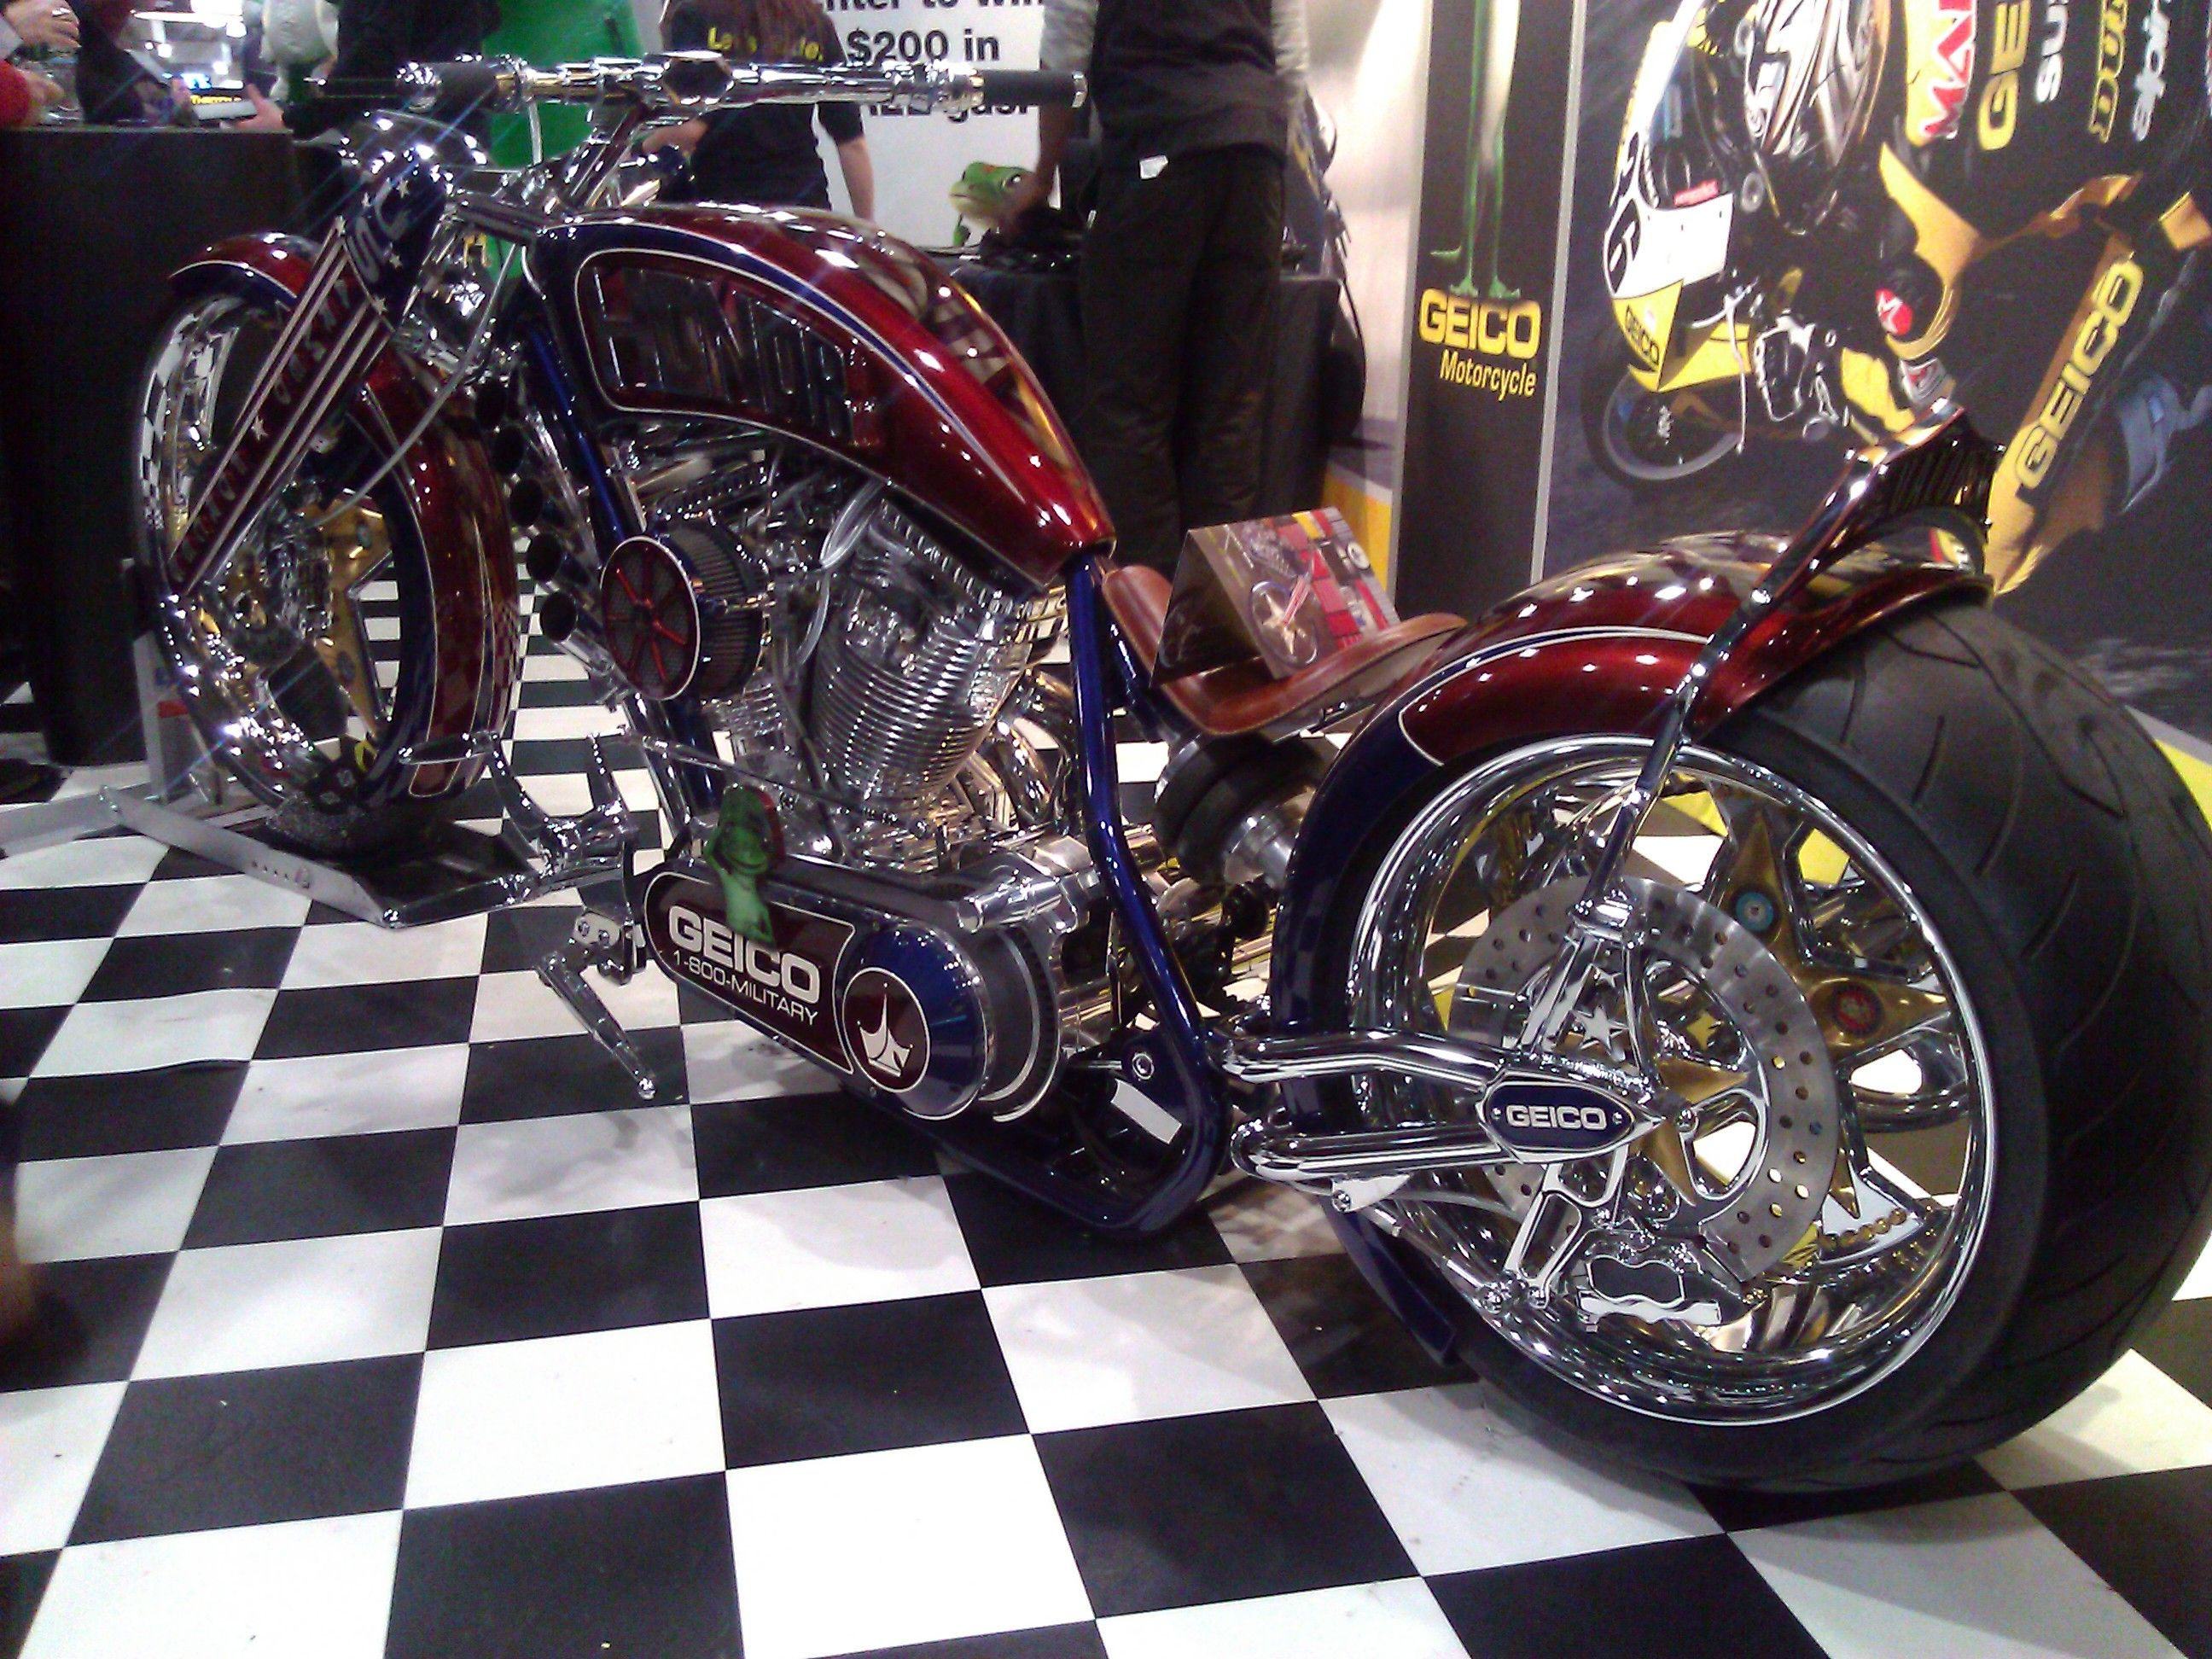 Geico Inspired Custom Design Motorcycle Chopper Photo 2